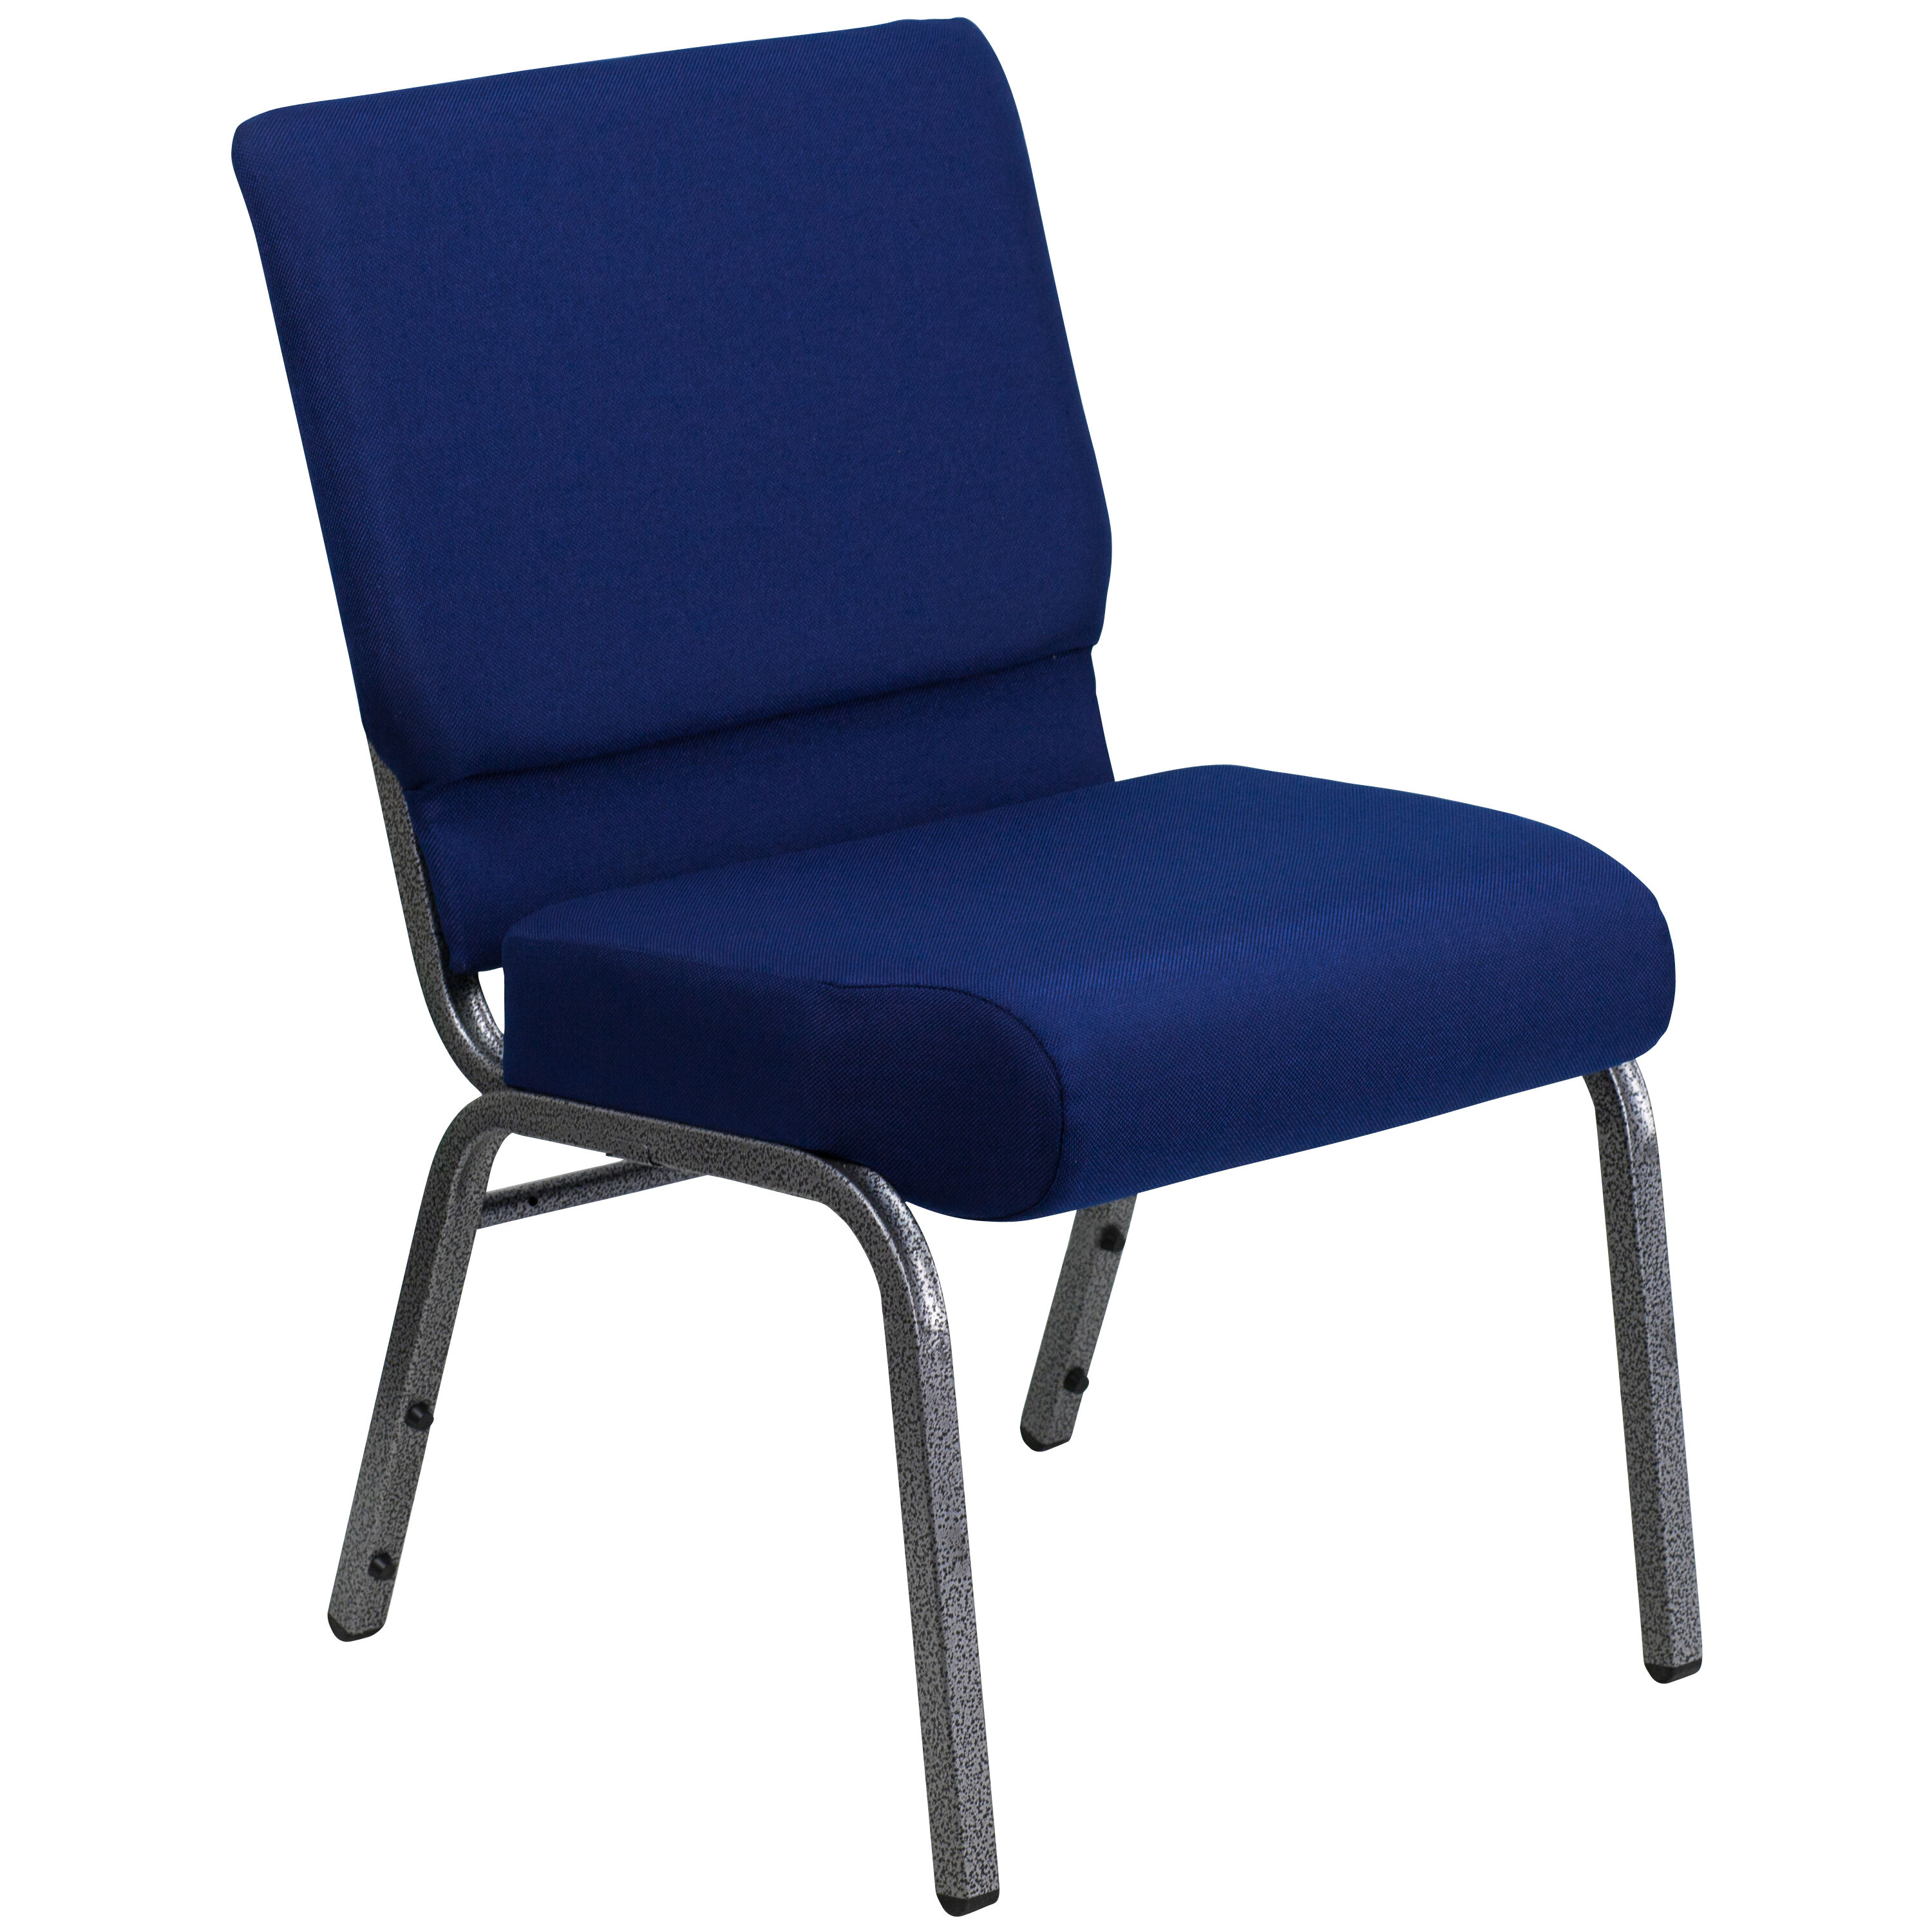 HERCULES Series 21W Stacking Church Chair in Navy Blue